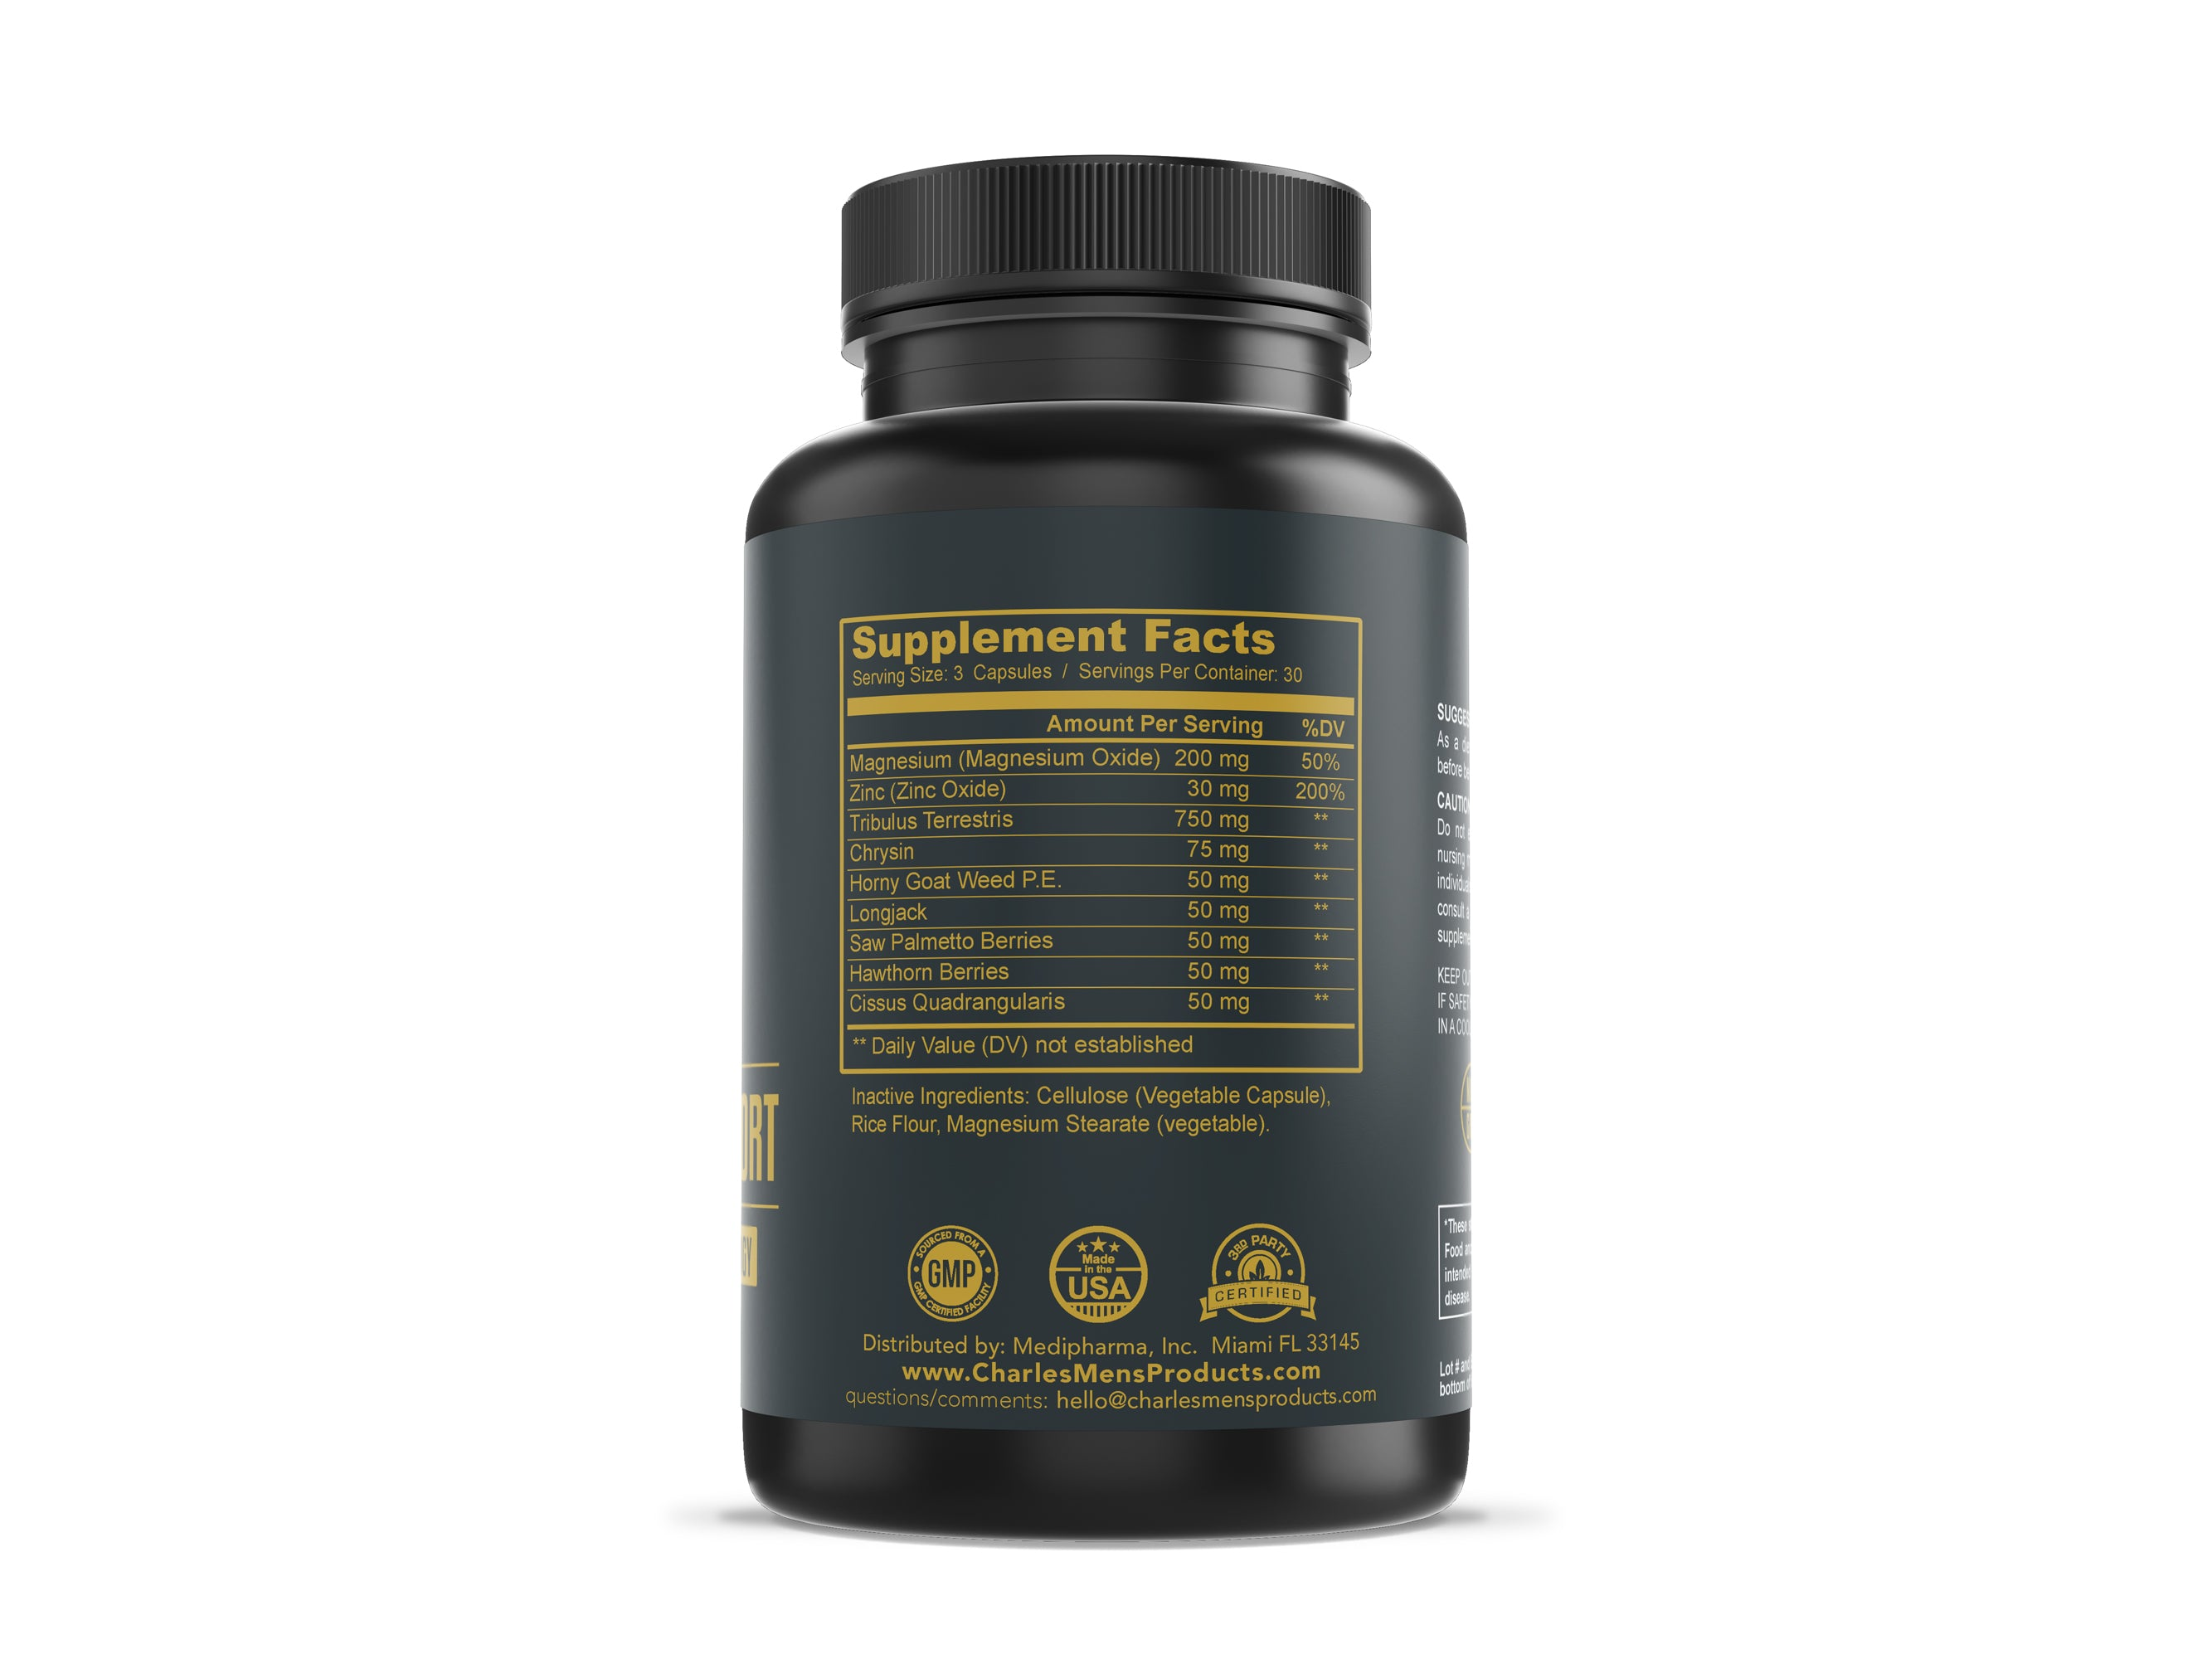 Charles Men's Products Premium Tesosterone Support, 90 capsules. The intended benefits of this supplement include testosterone boosting support, improved muscle growth, better overall bodybuilding results.